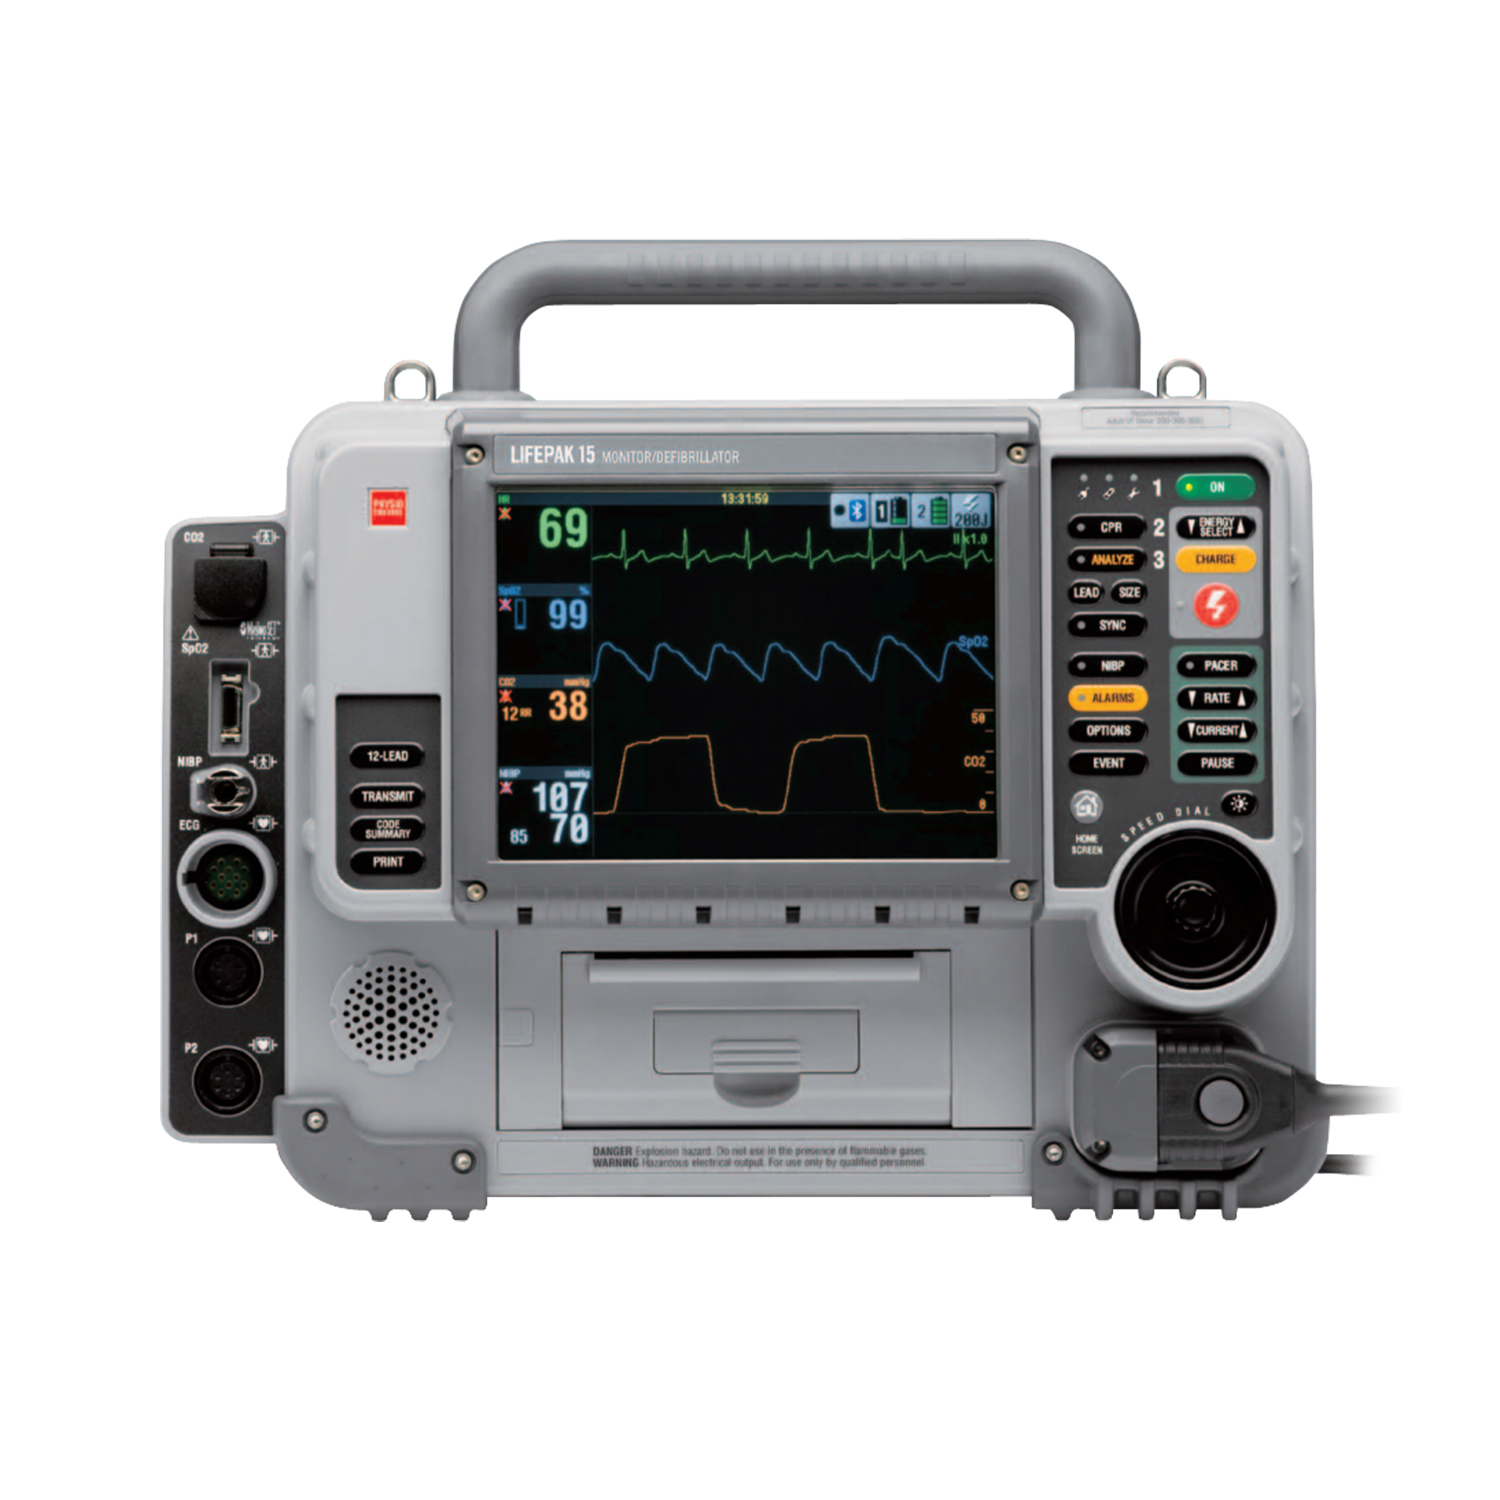 Lifepak 15 Defibrillator from Medtronic Physio-Control